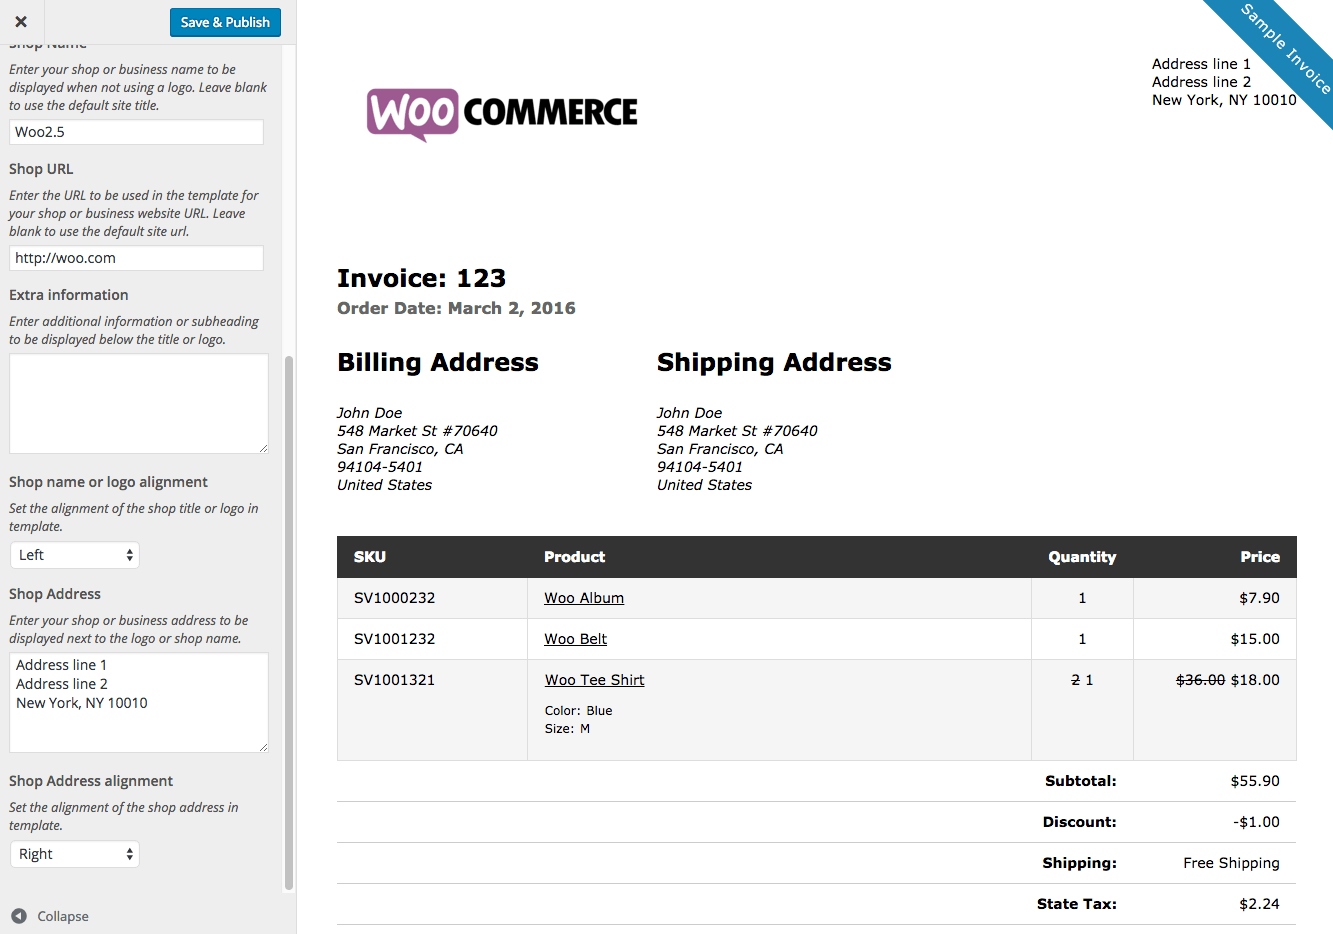 Darkfaderus  Pleasant Woocommerce Print Invoices Amp Packing Lists  Woocommerce Docs With Lovable Woocommerce Print Invoices  Packing Lists Customizer With Awesome Receipt For Purchase Also Sbi Life Insurance Online Premium Payment Receipt In Addition How Do U Spell Receipt And Money Receipt Book As Well As Refund Receipt Additionally Receipt Of Order From Docswoocommercecom With Darkfaderus  Lovable Woocommerce Print Invoices Amp Packing Lists  Woocommerce Docs With Awesome Woocommerce Print Invoices  Packing Lists Customizer And Pleasant Receipt For Purchase Also Sbi Life Insurance Online Premium Payment Receipt In Addition How Do U Spell Receipt From Docswoocommercecom